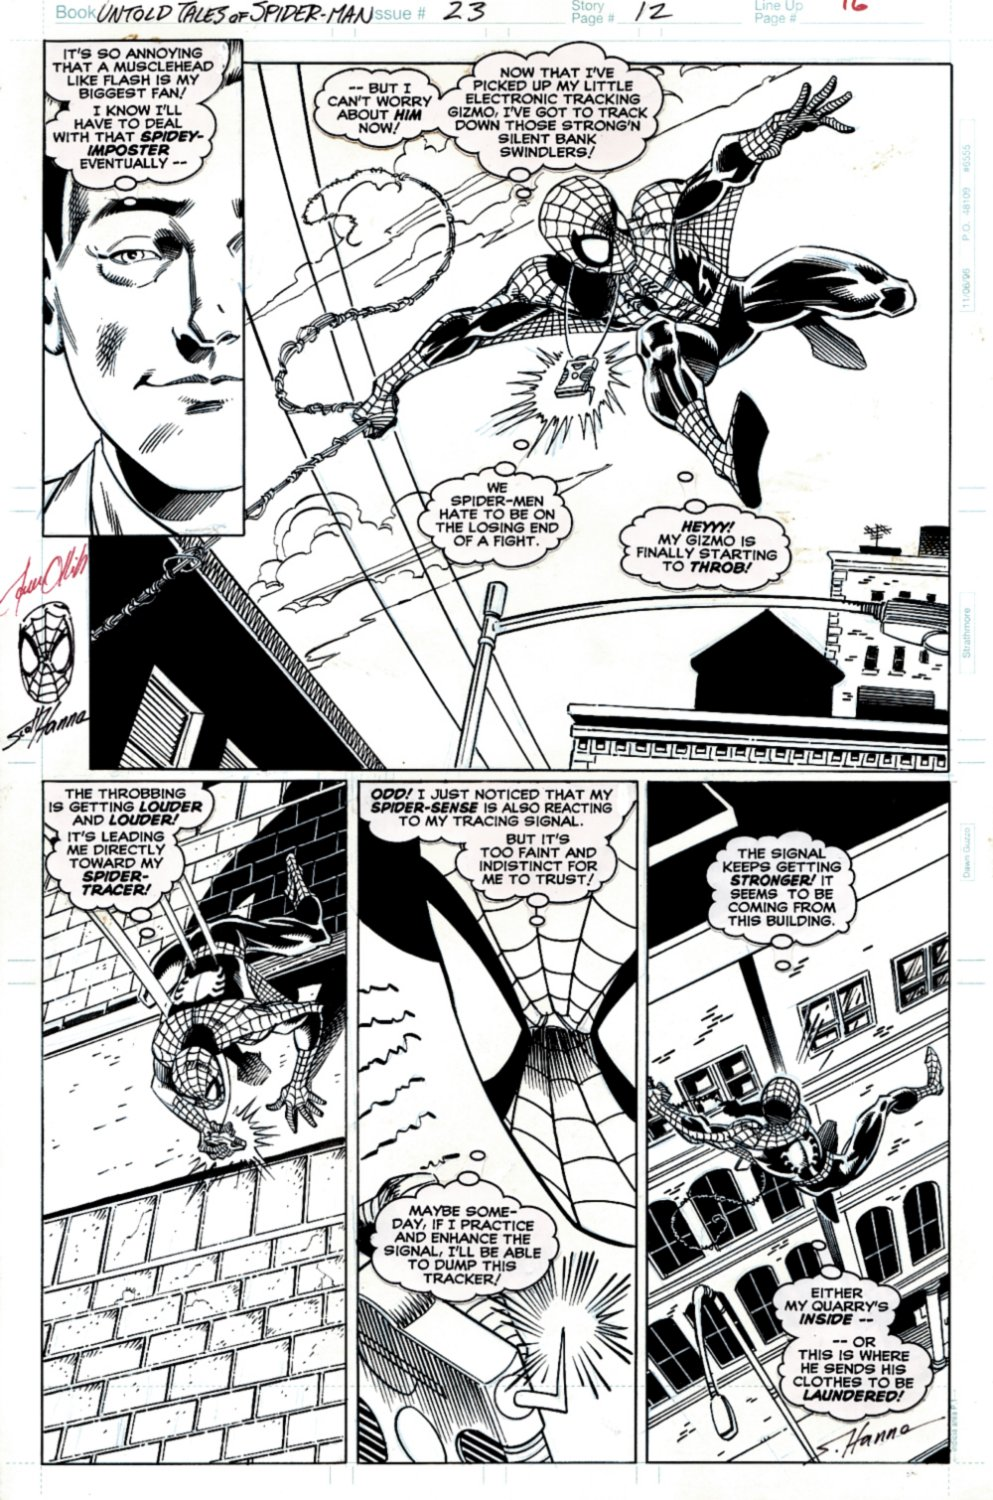 Untold Tales of Spider-Man #23 p 12 (SOLD LIVE ON 'DUELING DEALERS OF COMIC ART' EPISODE #35 PODCAST ON 9-4-2021